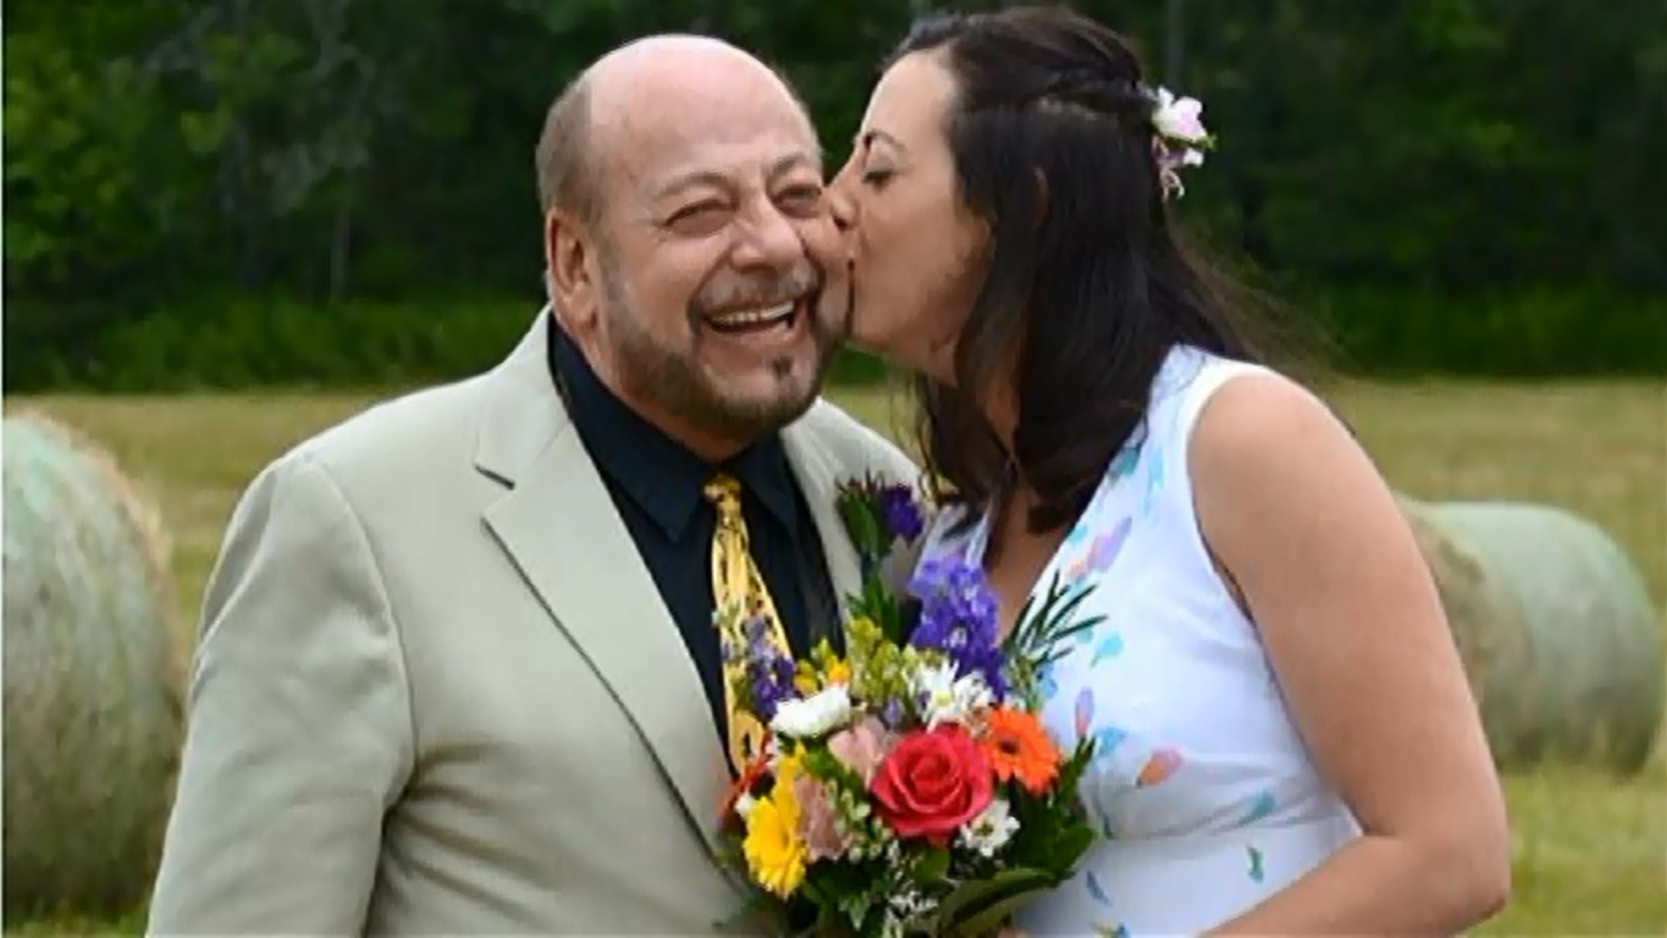 A Canadian Man Was Struck By Lightning While Giving Speech At His Daughters Wedding